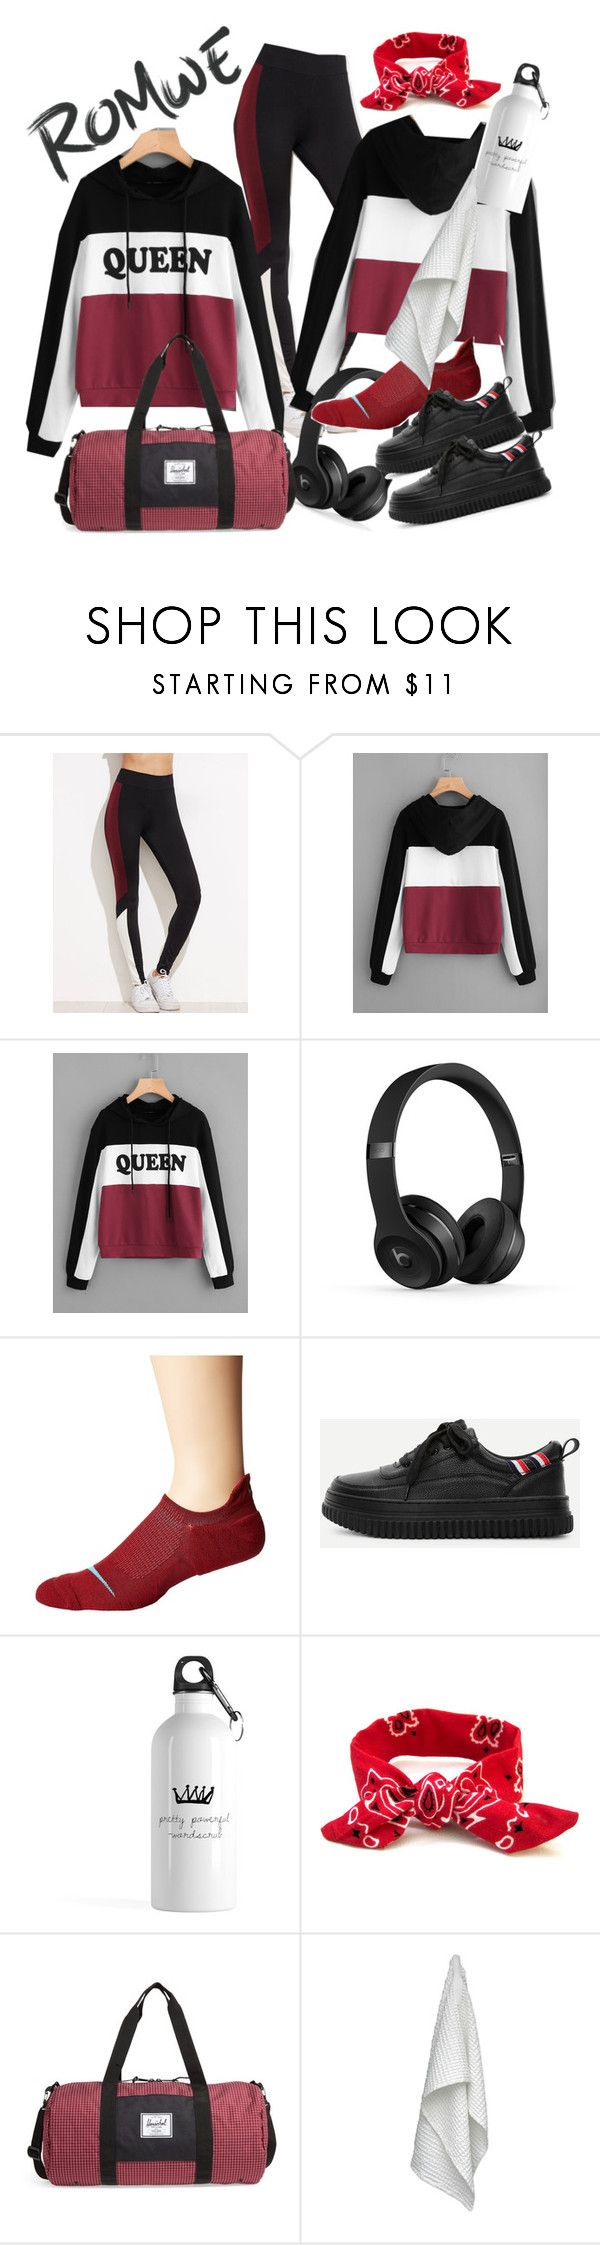 """""""ROMWE Queen"""" by cigoehring ❤ liked on Polyvore featuring NIKE, Herschel Supply Co. and The Organic Company"""